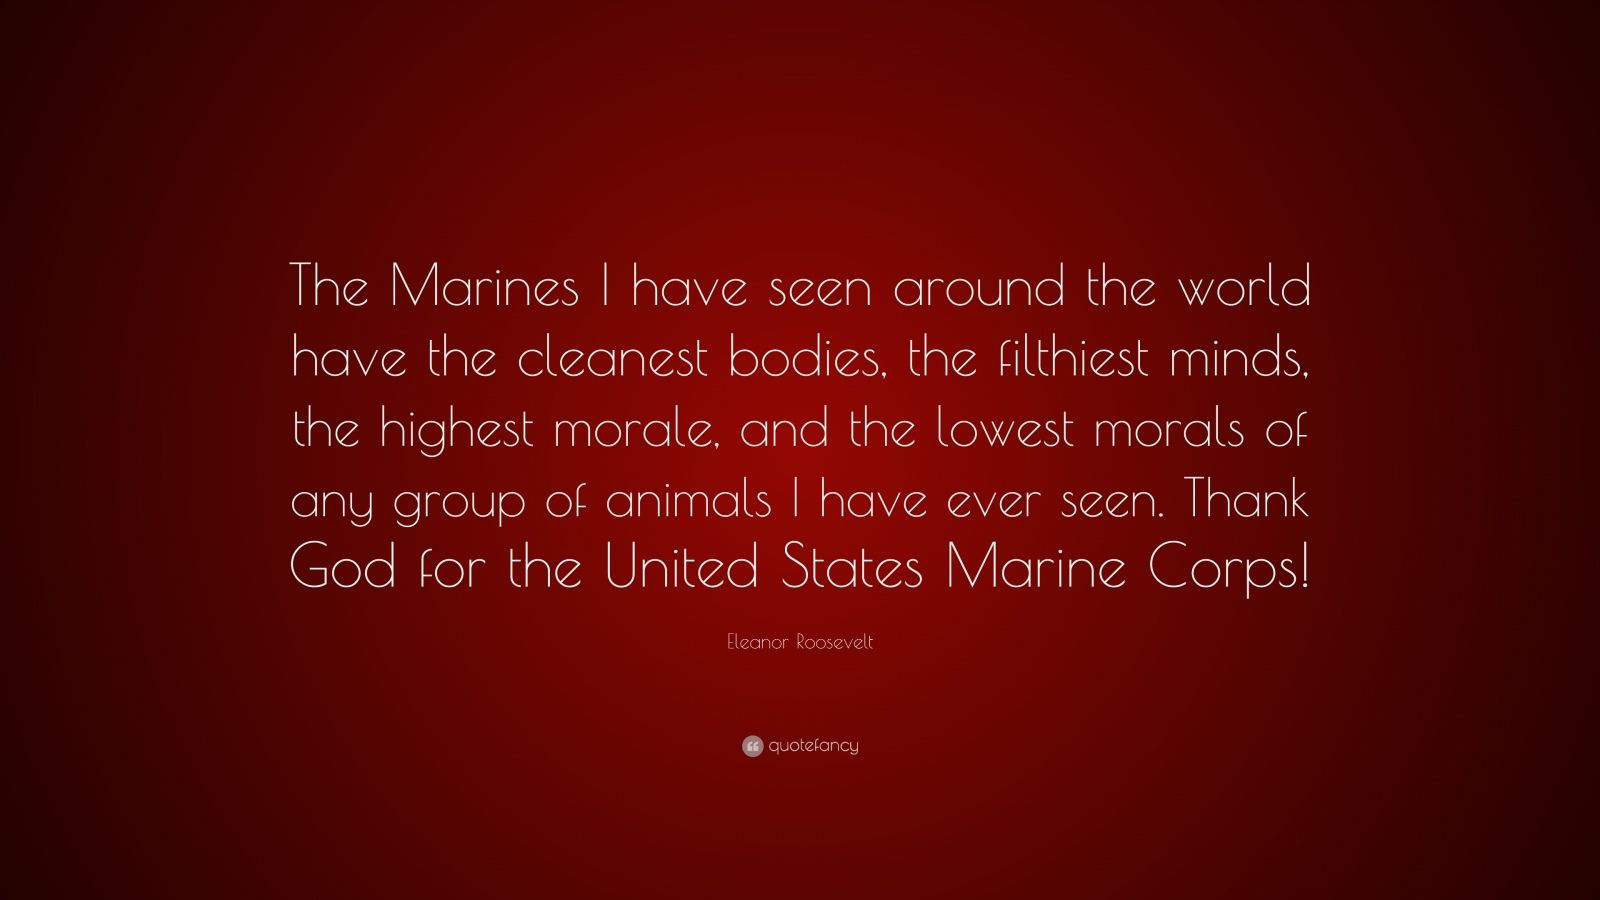 Eleanor Roosevelt Quote About Marines New Eleanor Roosevelt Quotes 100 Wallpapers  Quotefancy